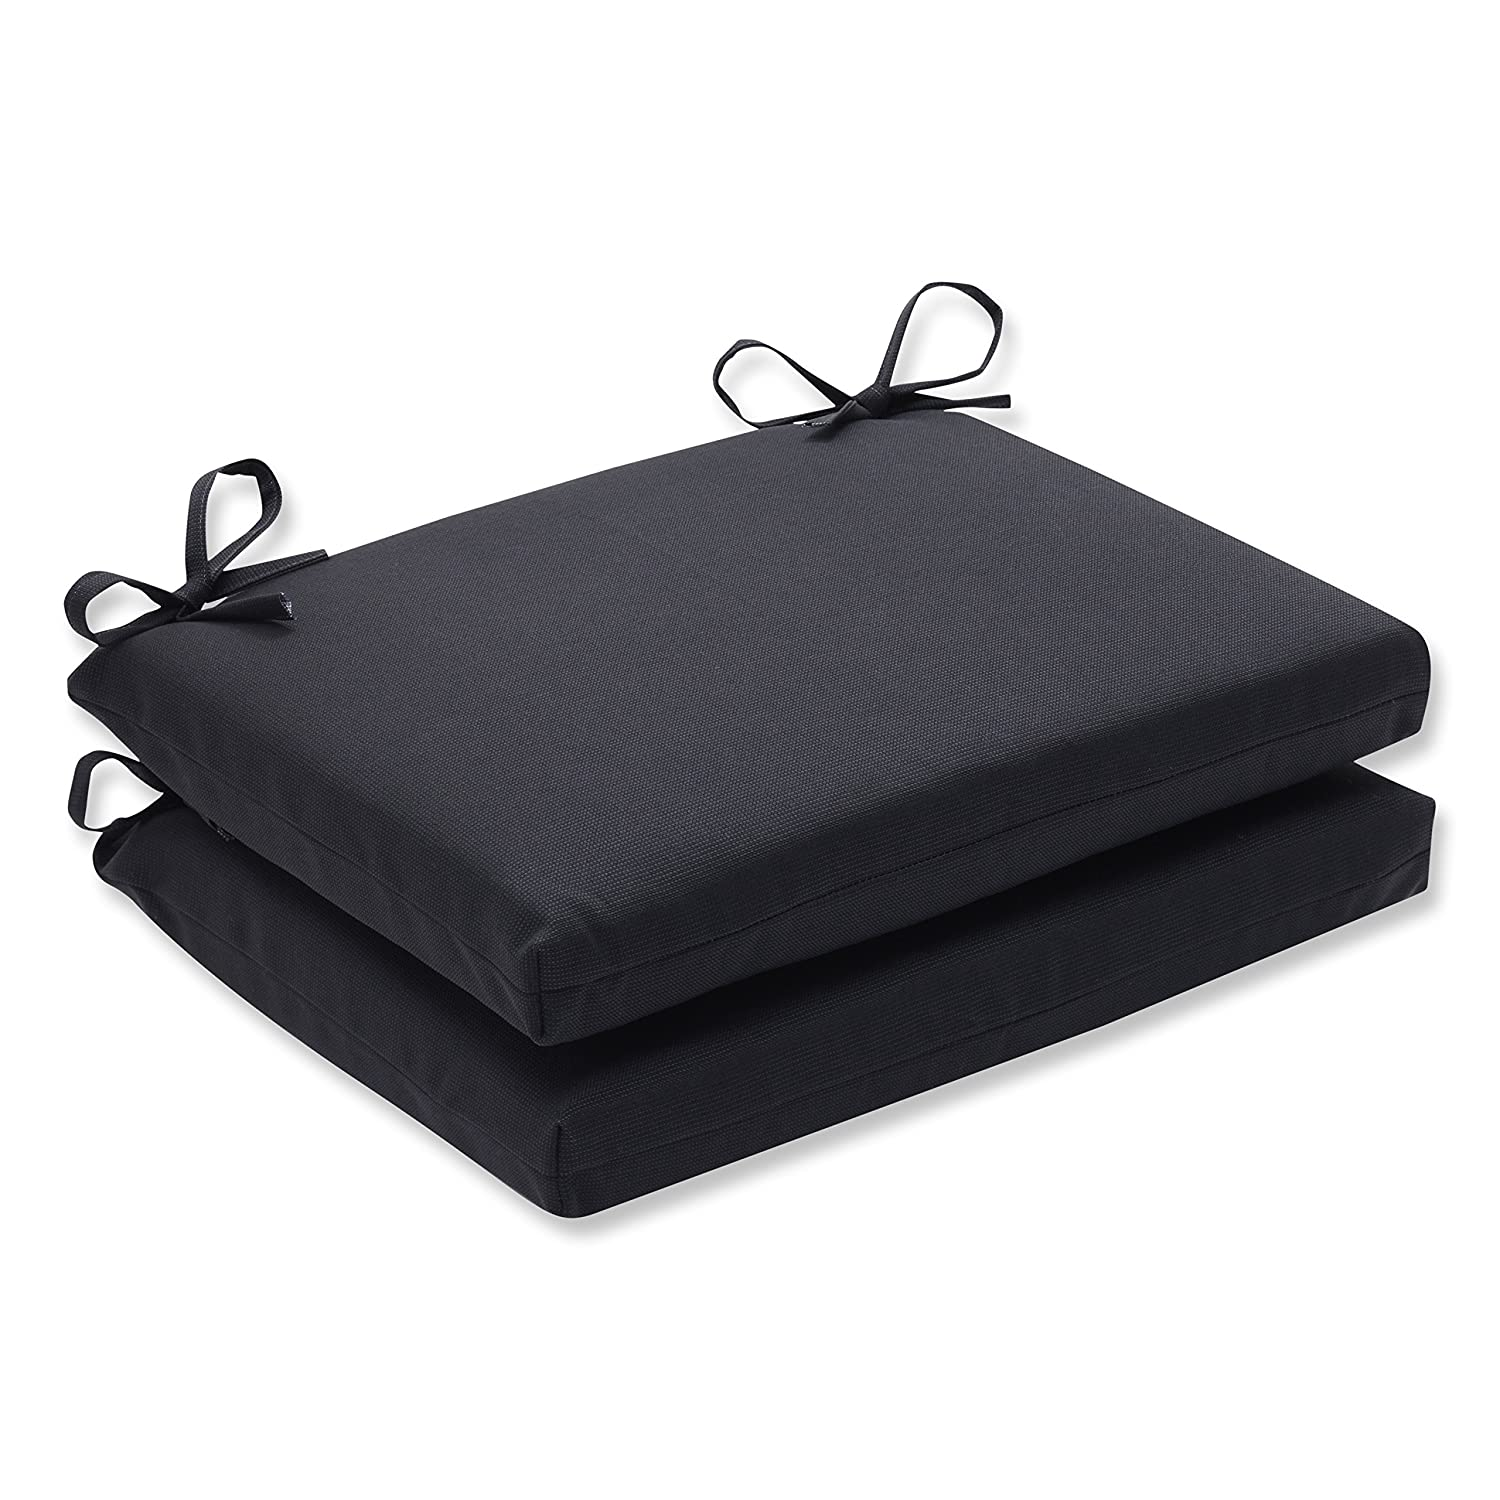 Pillow Perfect Indoor/Outdoor Fresco Squared Seat Cushion, Set of 2, 18.5 in. L X 16 in. W X 3 in. D, Black